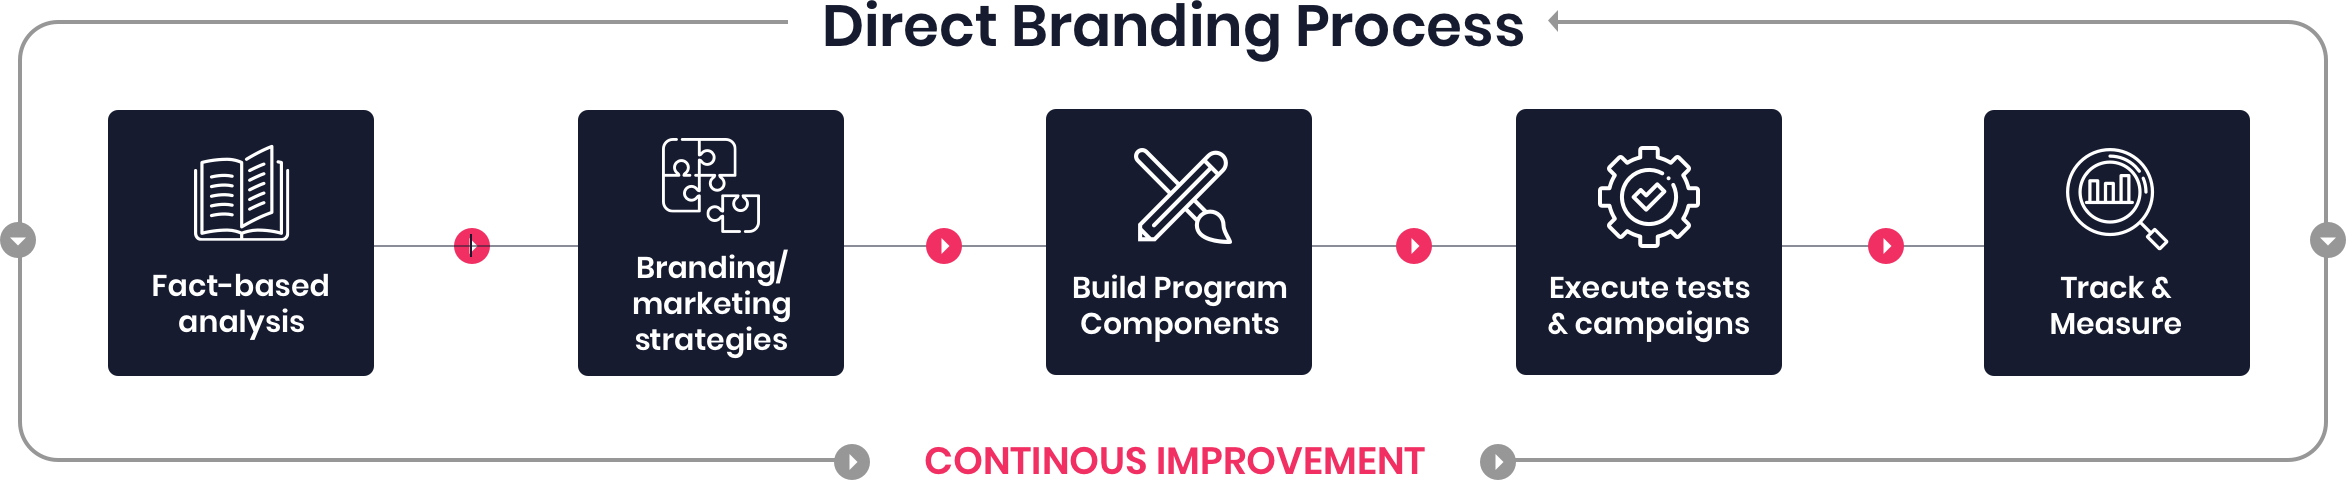 Direct branding Process diagram@2x